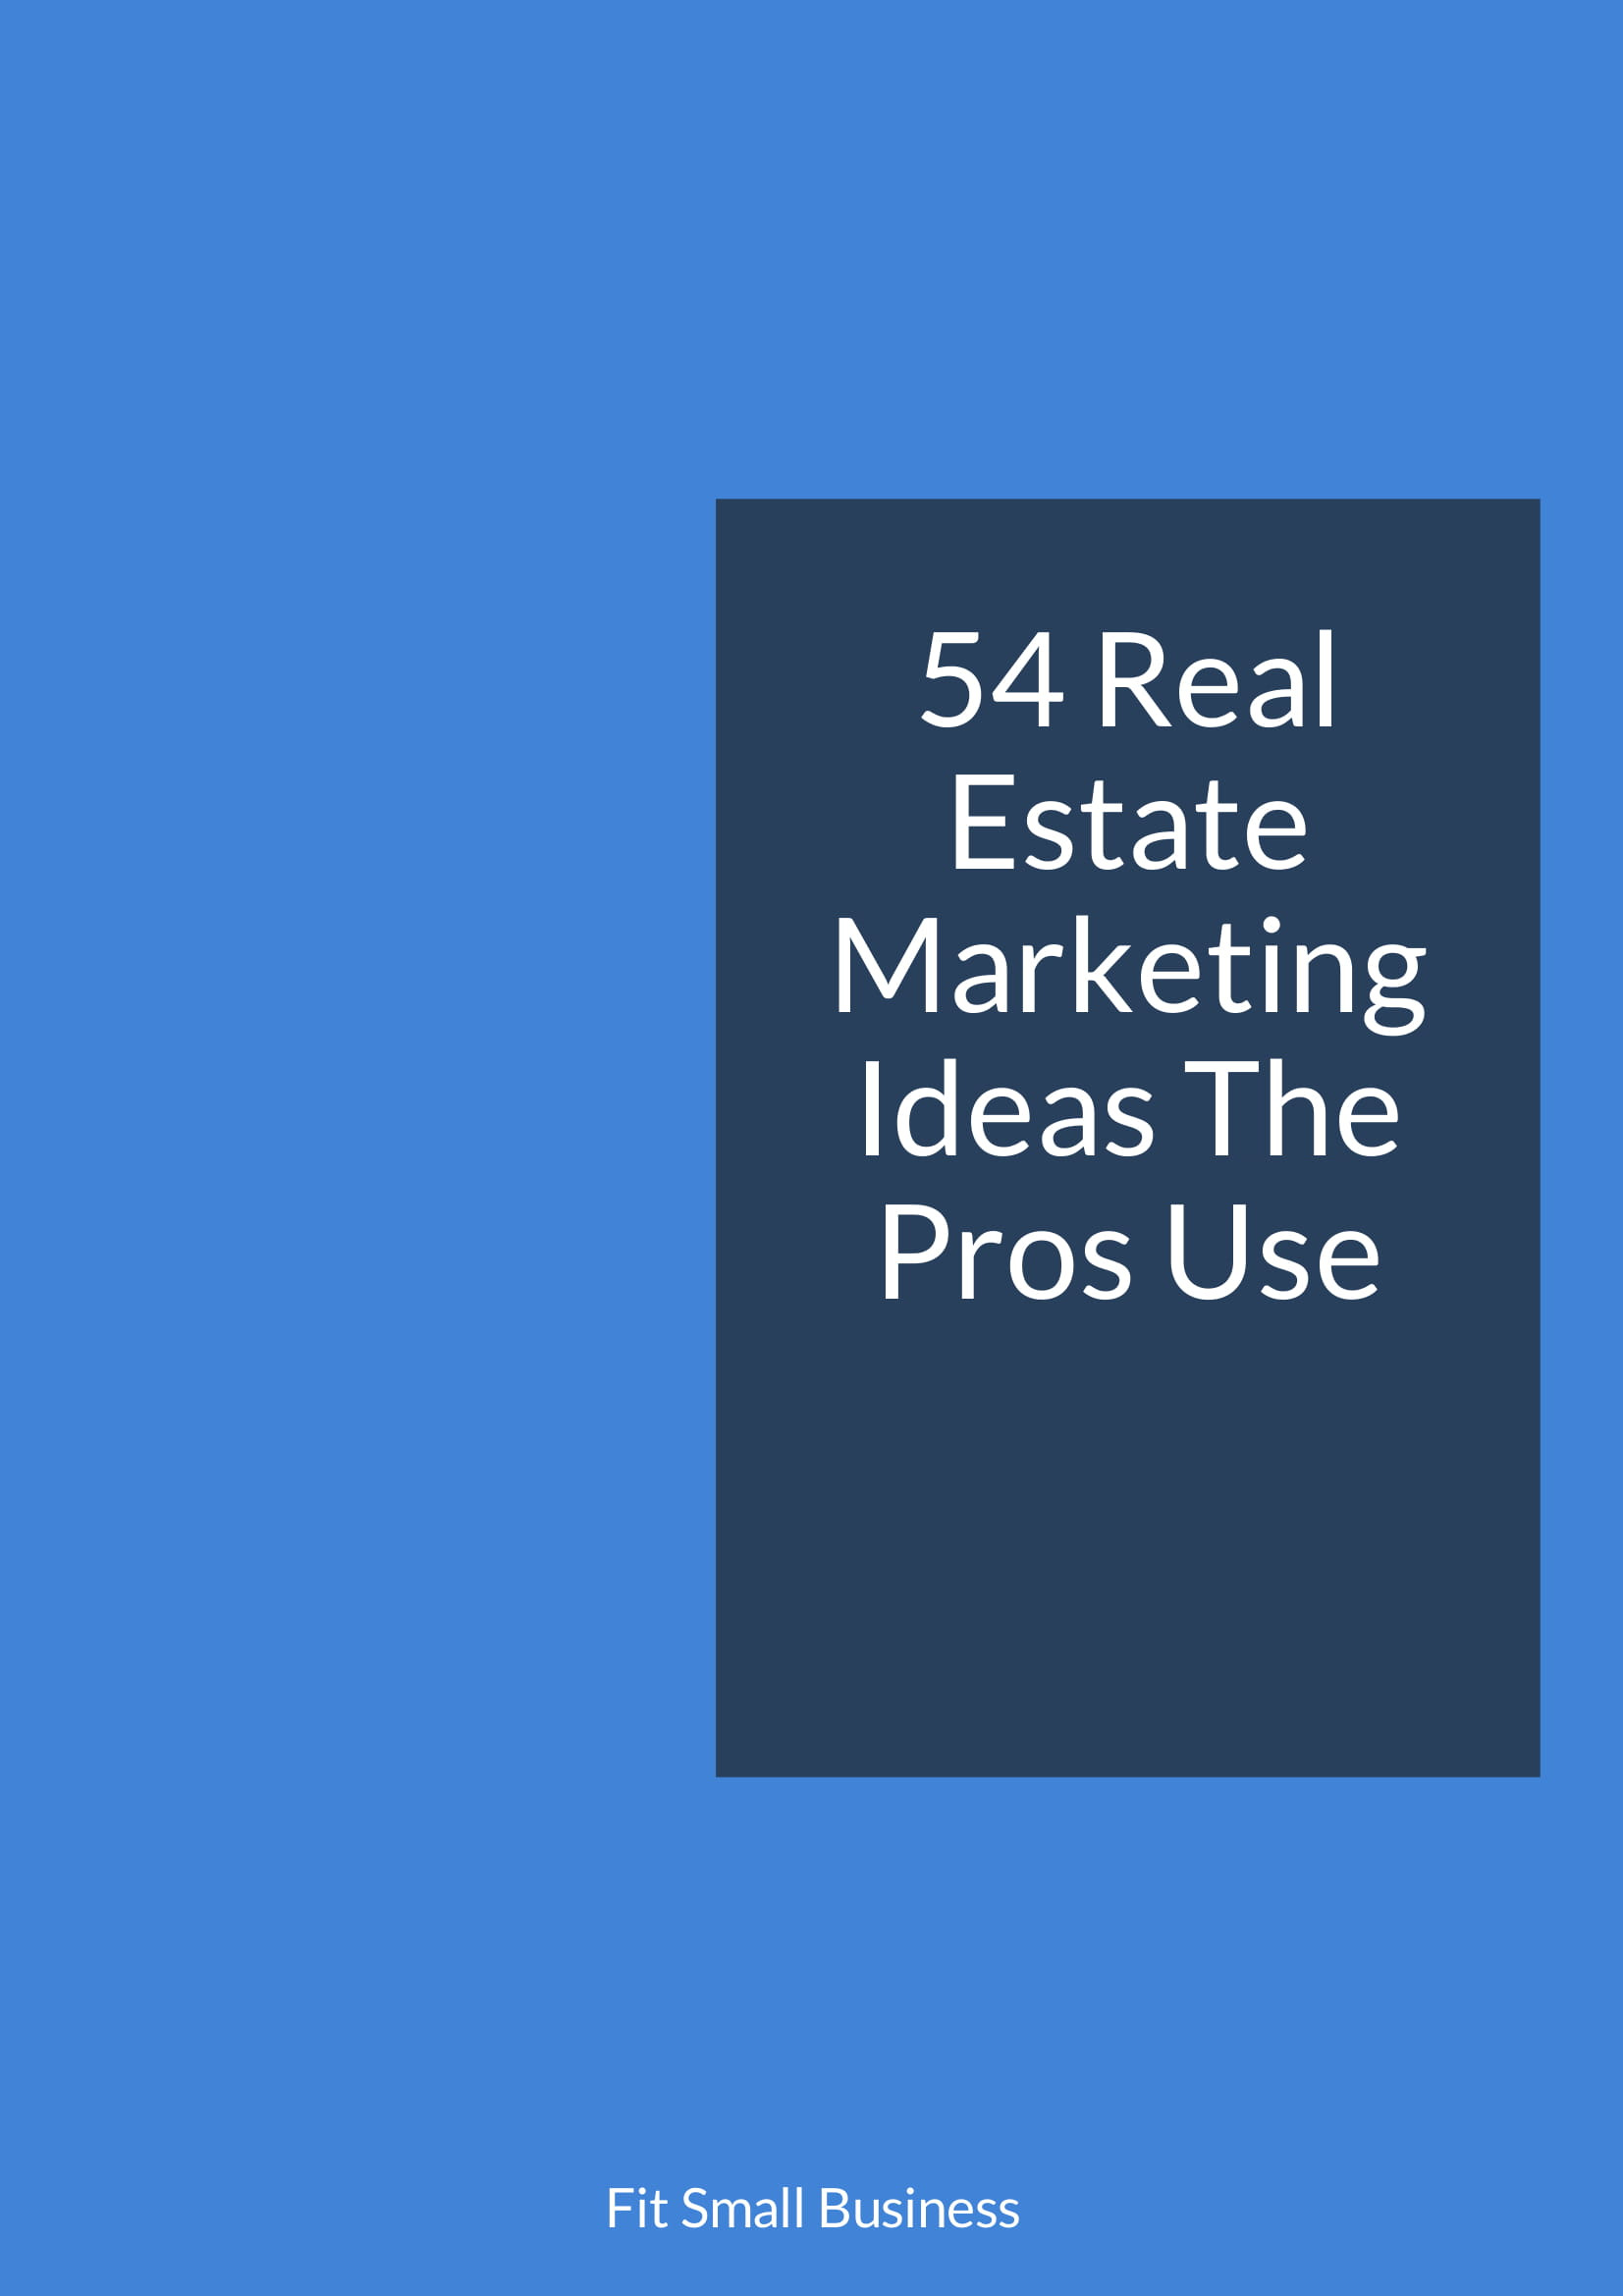 real estate marketing ideas pdf 2